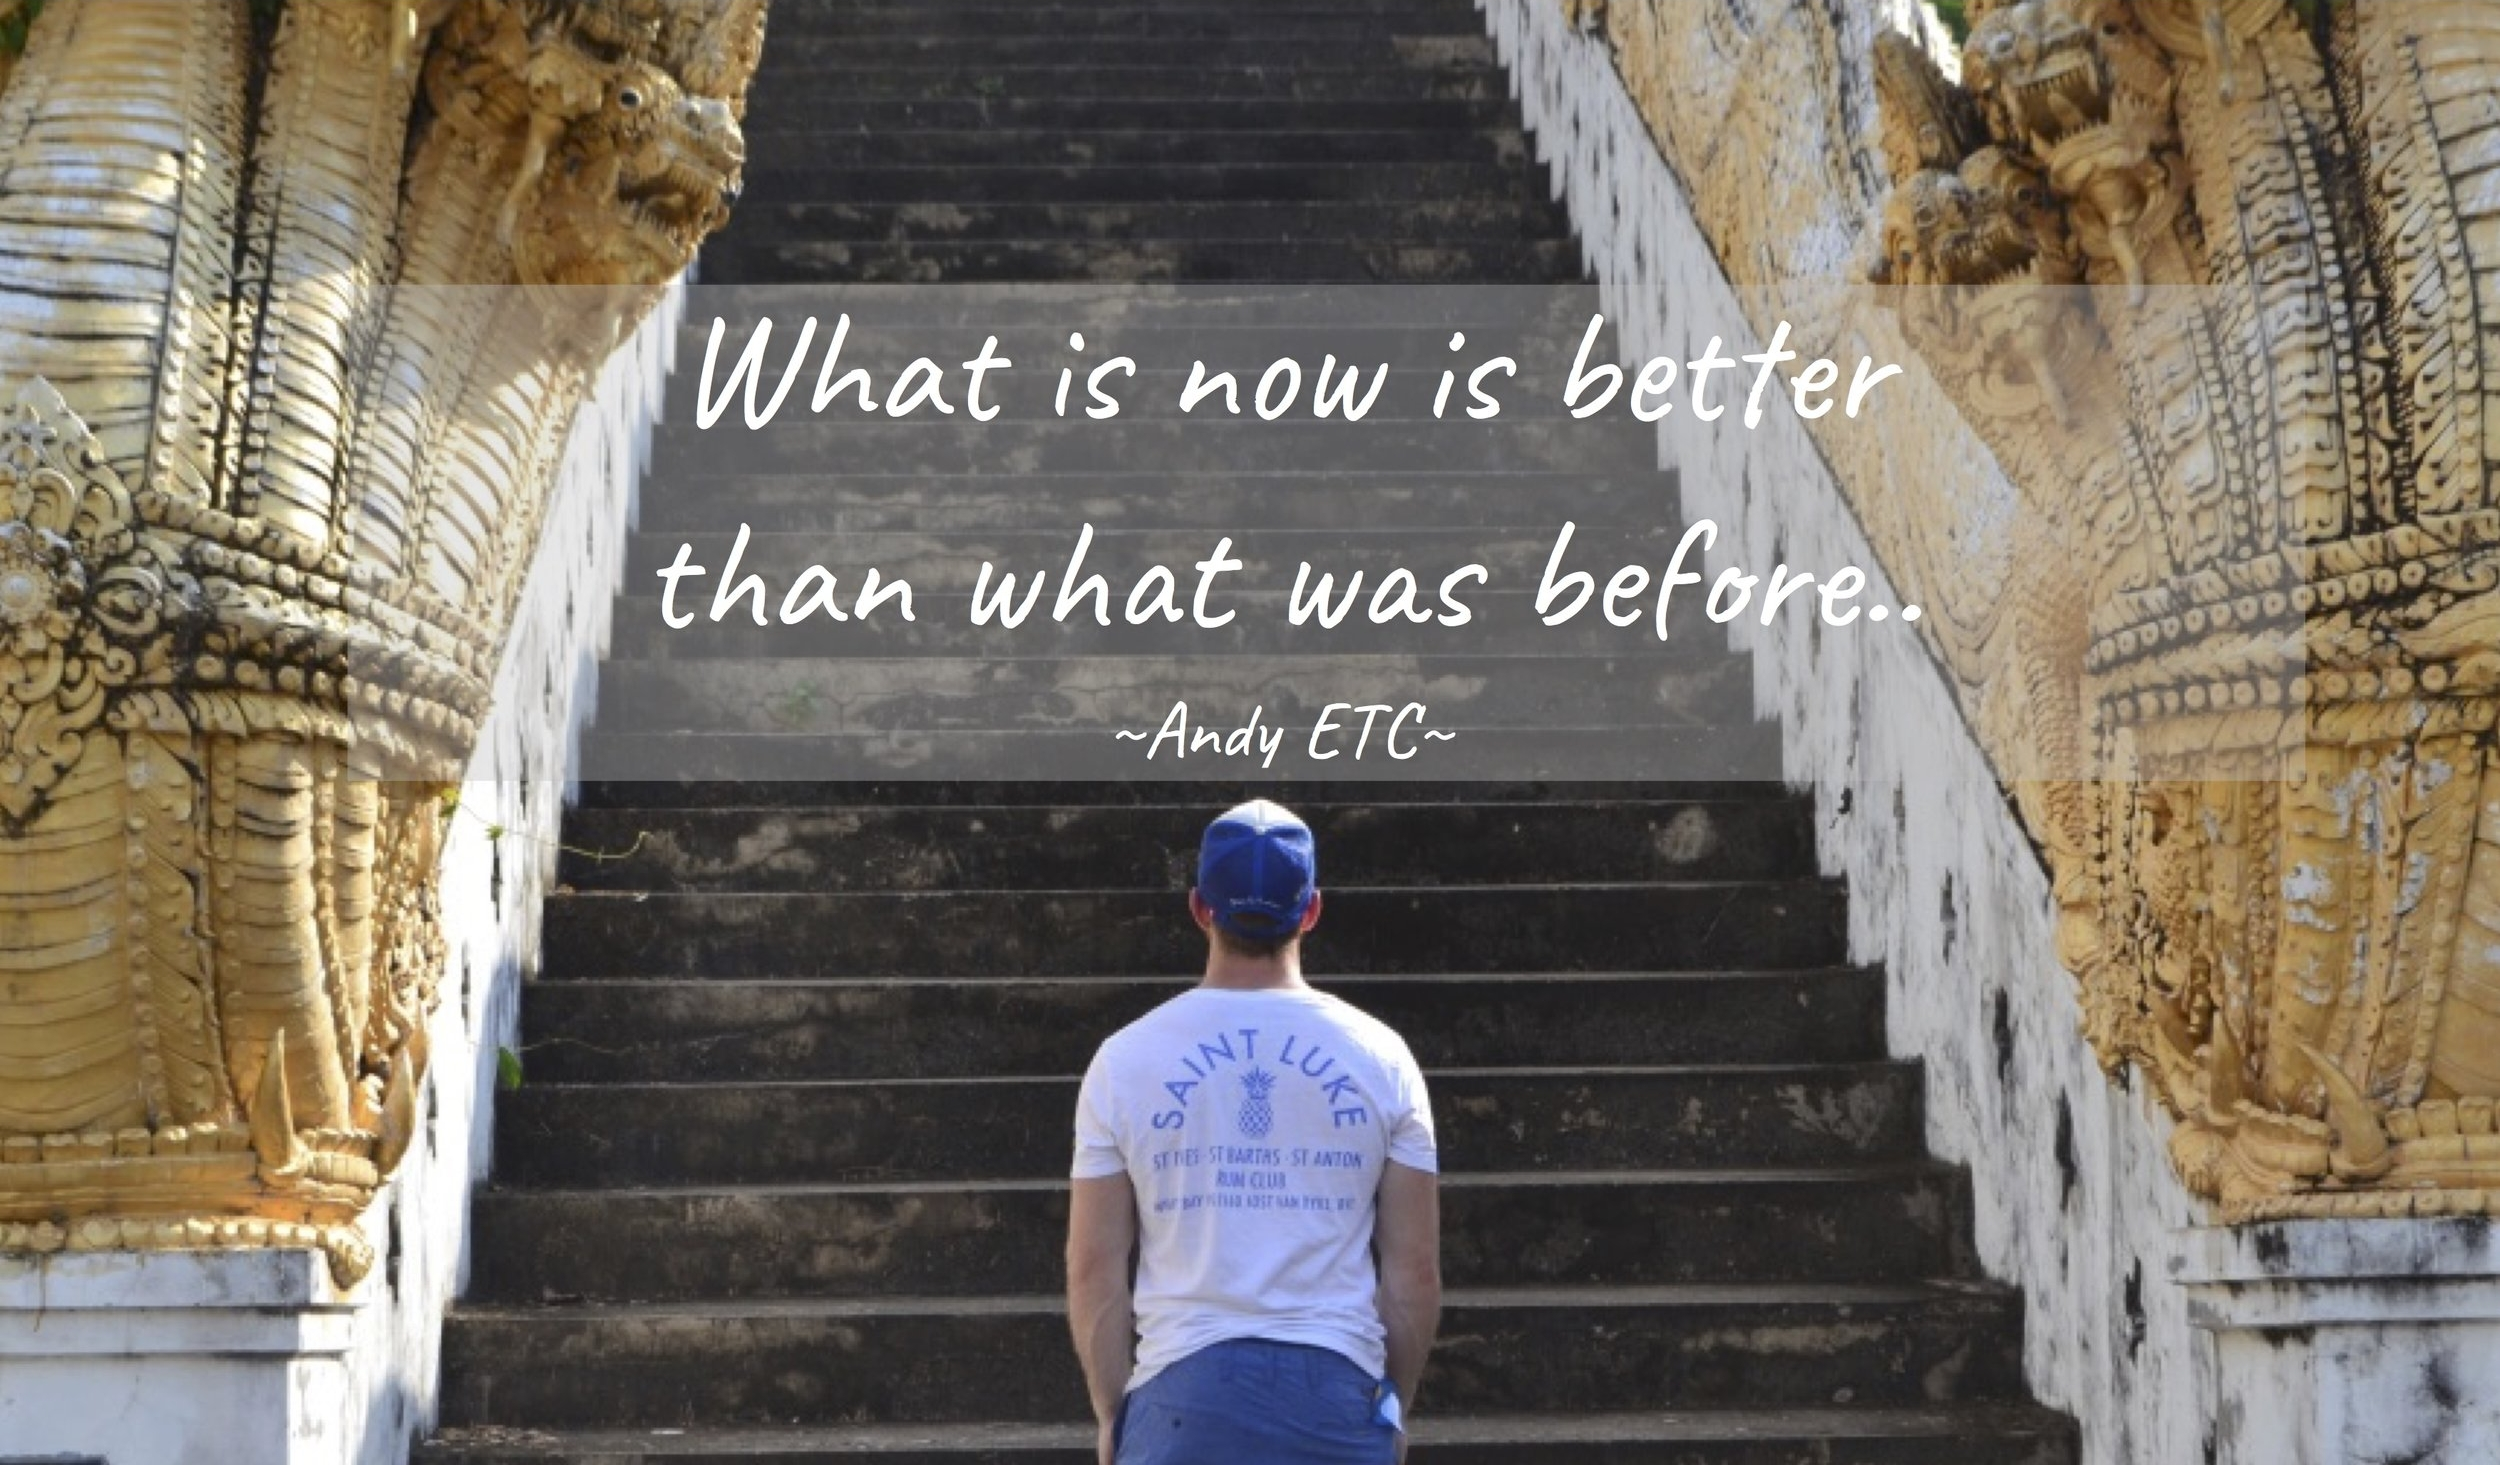 What is now is better than what was before.jpg